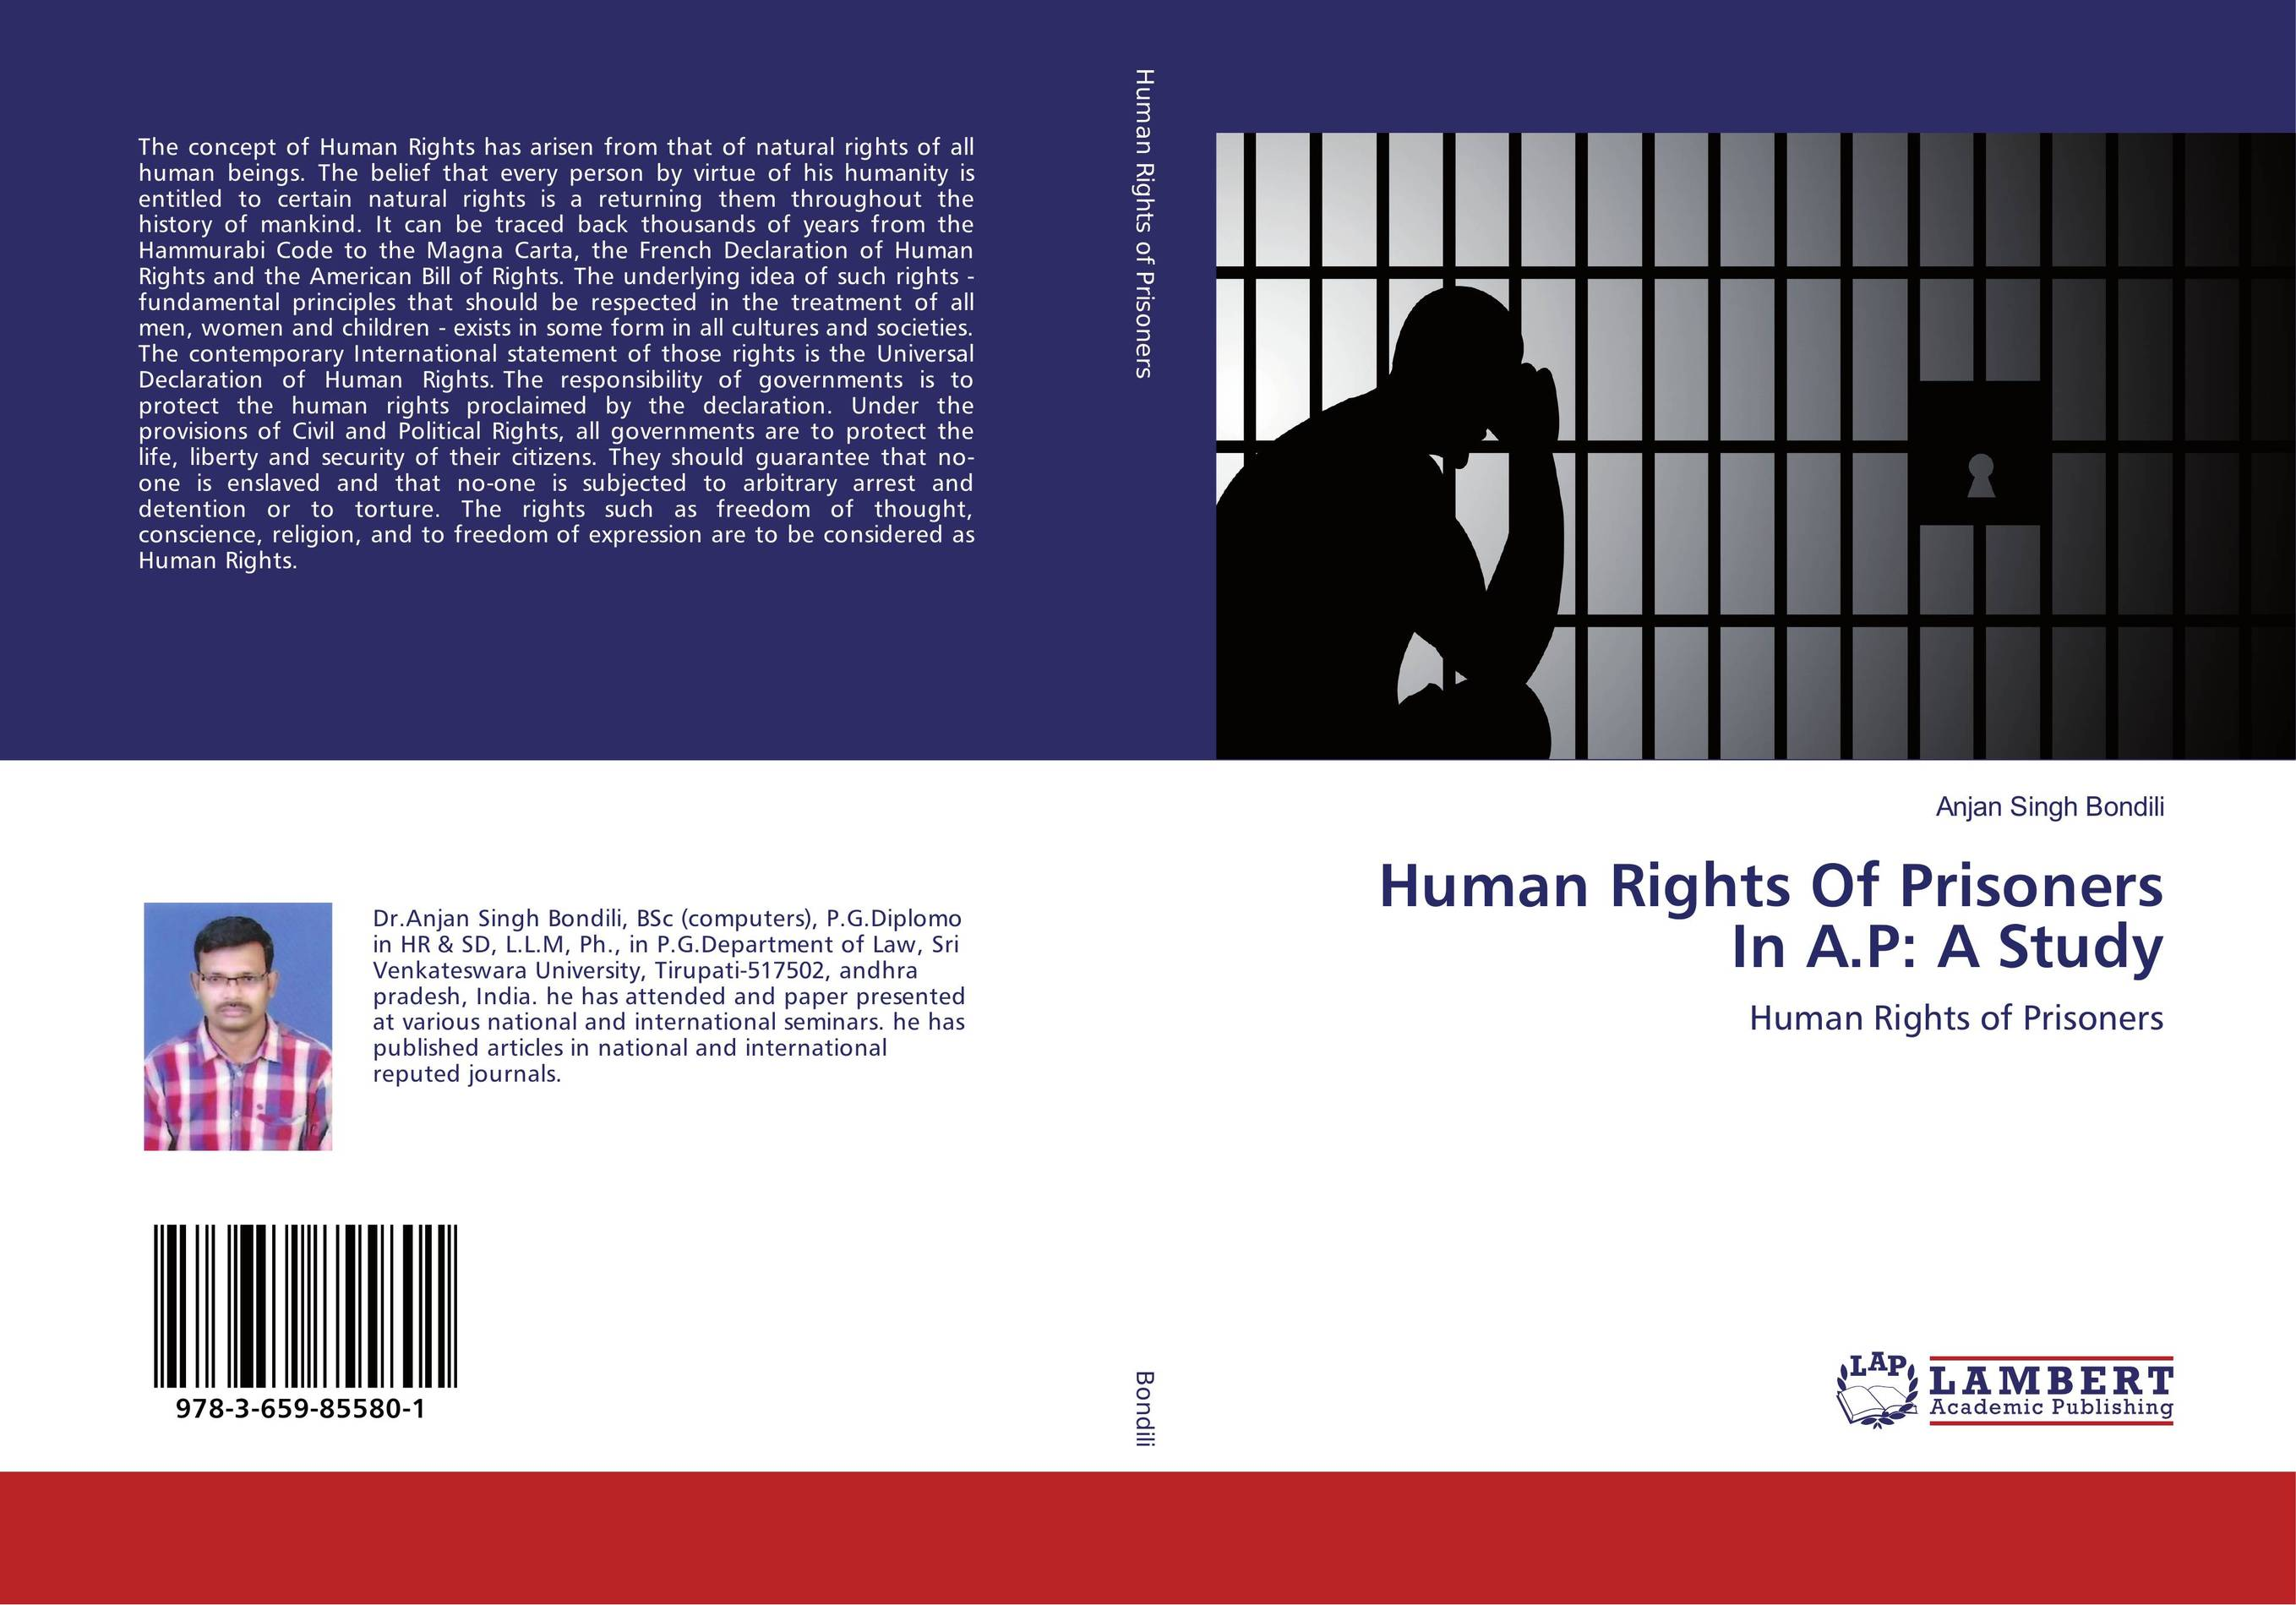 Human Rights Of Prisoners In A.P: A Study the heart of human rights